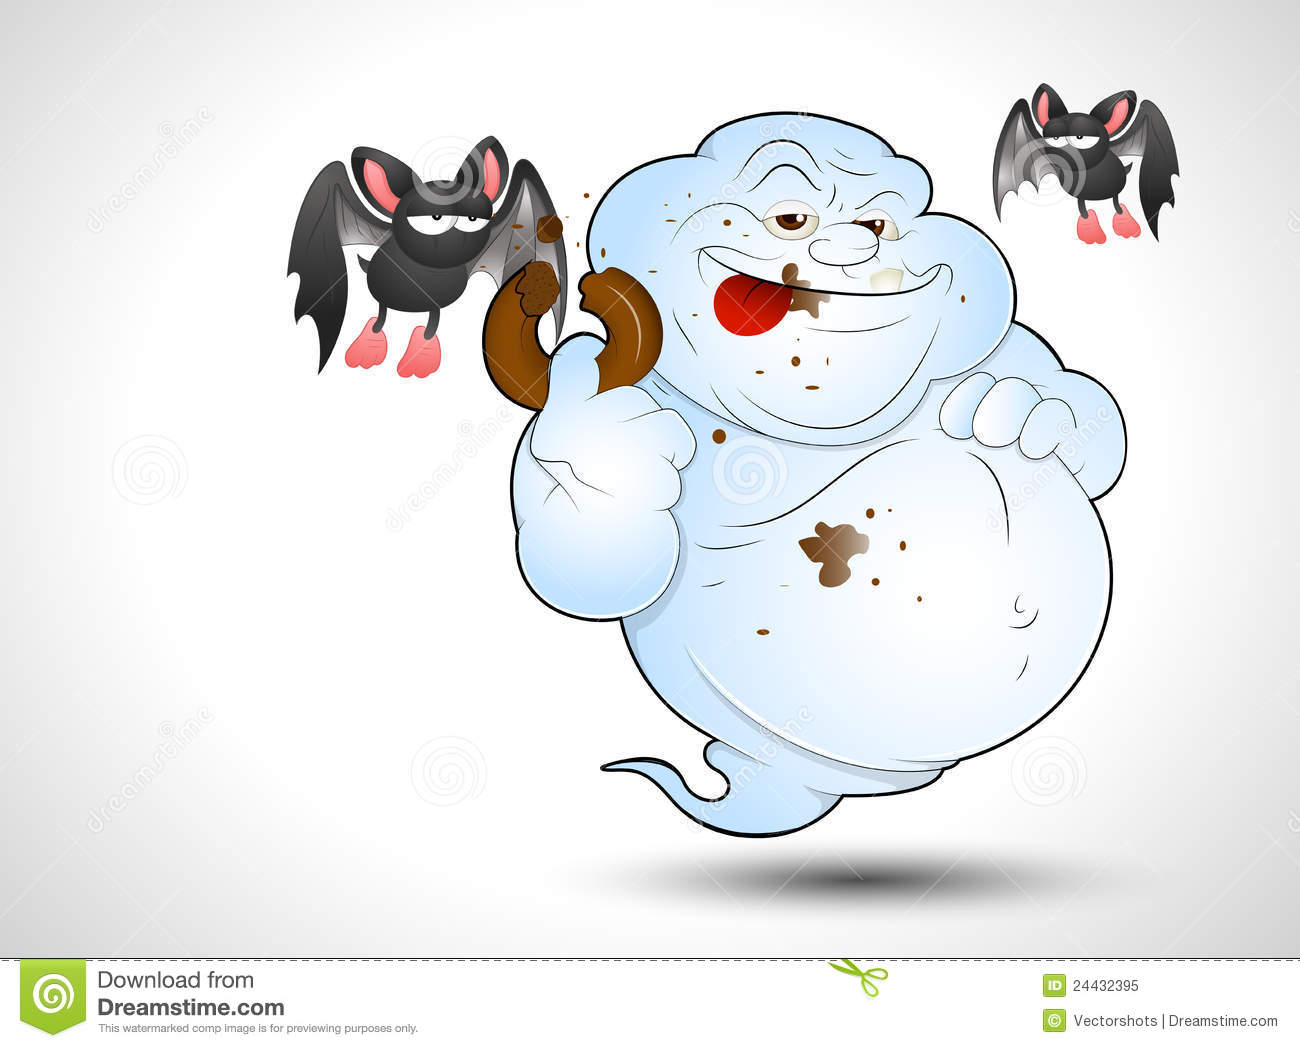 Creative Design Art of Cartoon Ghost Vector Illustration.